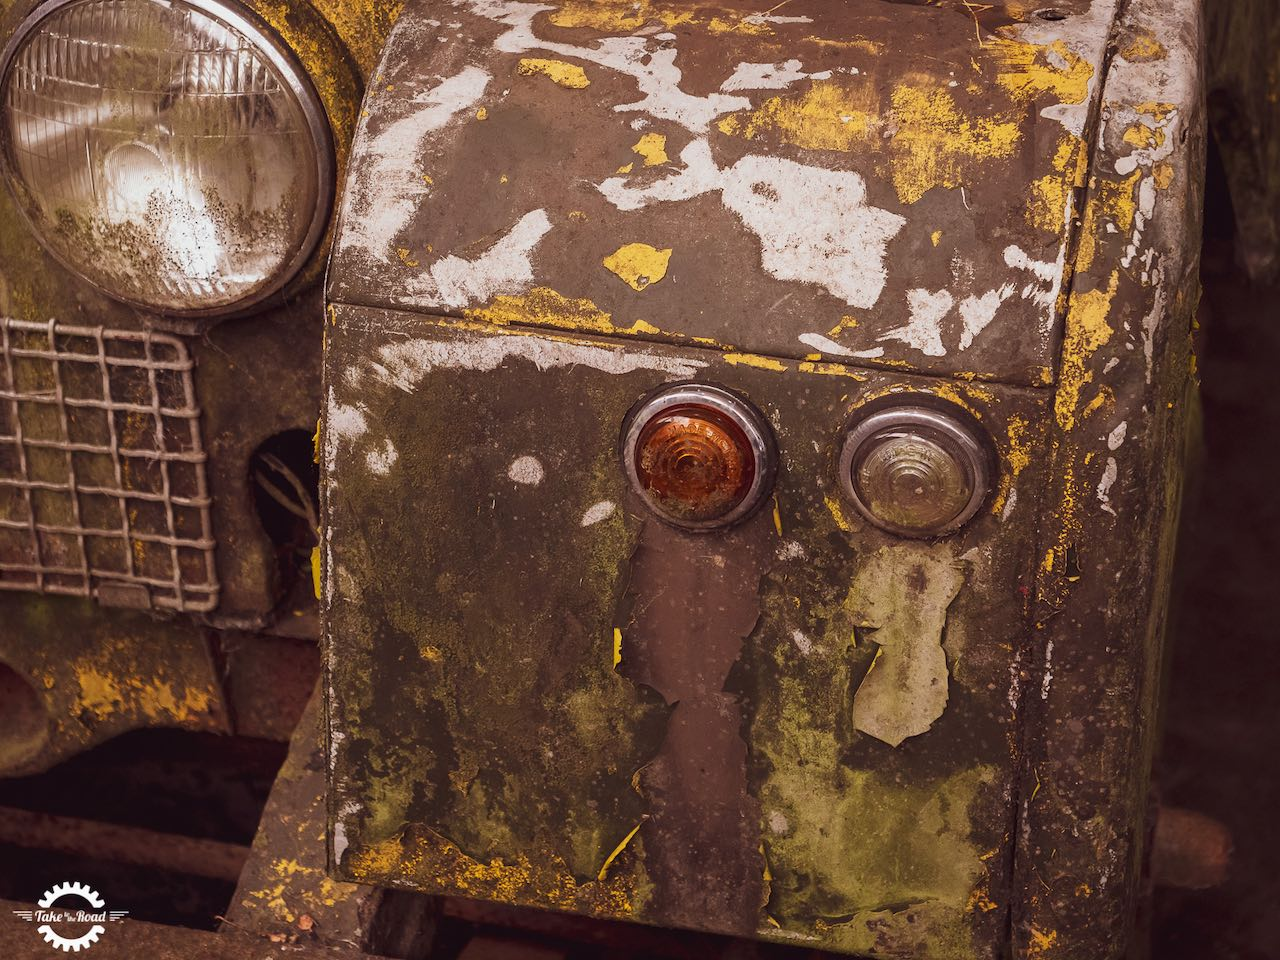 Sometimes scrapping a classic car is the only option